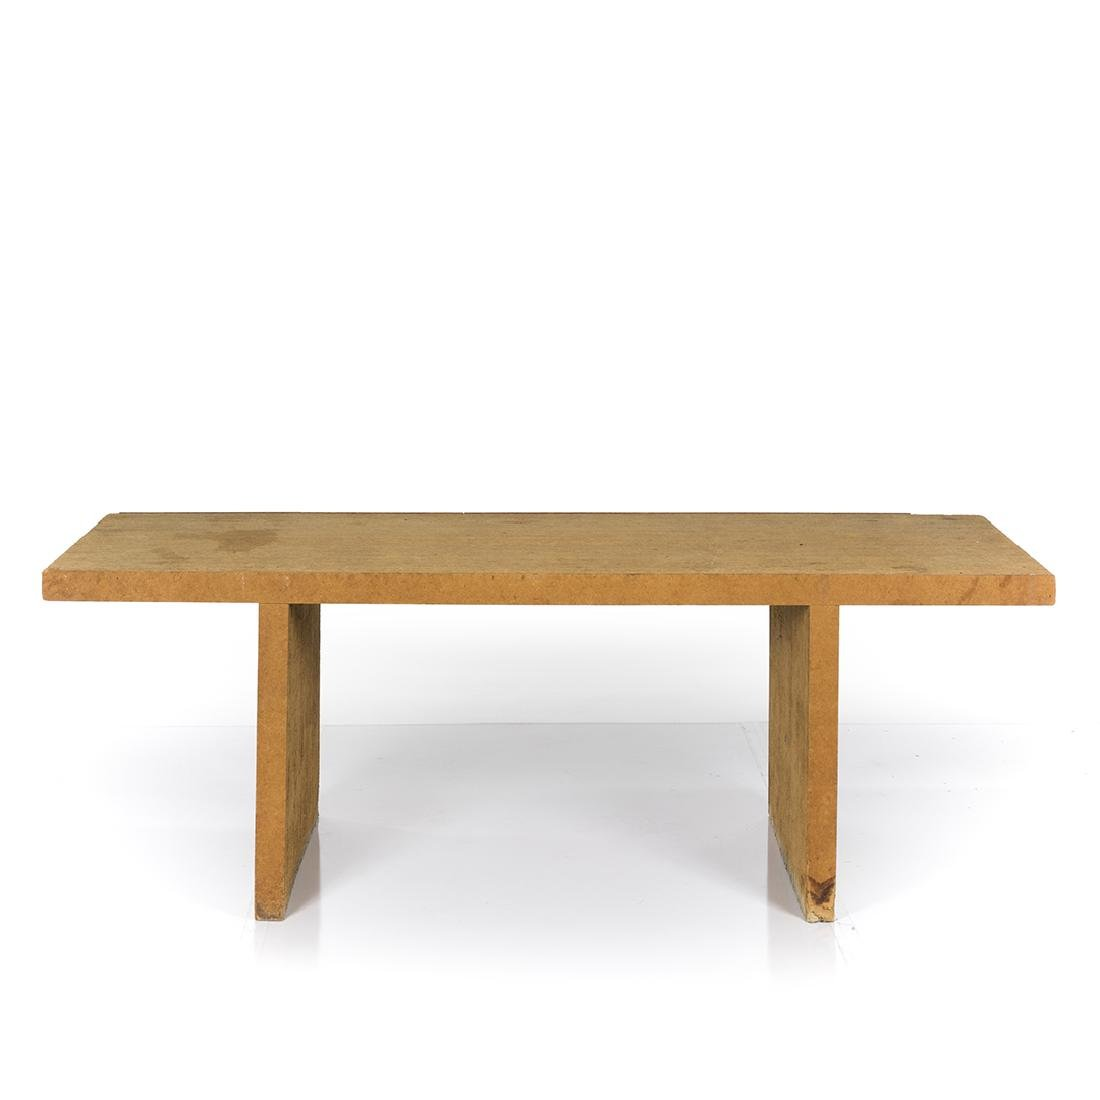 Frank Gehry Easy Edges Dining Table - 2